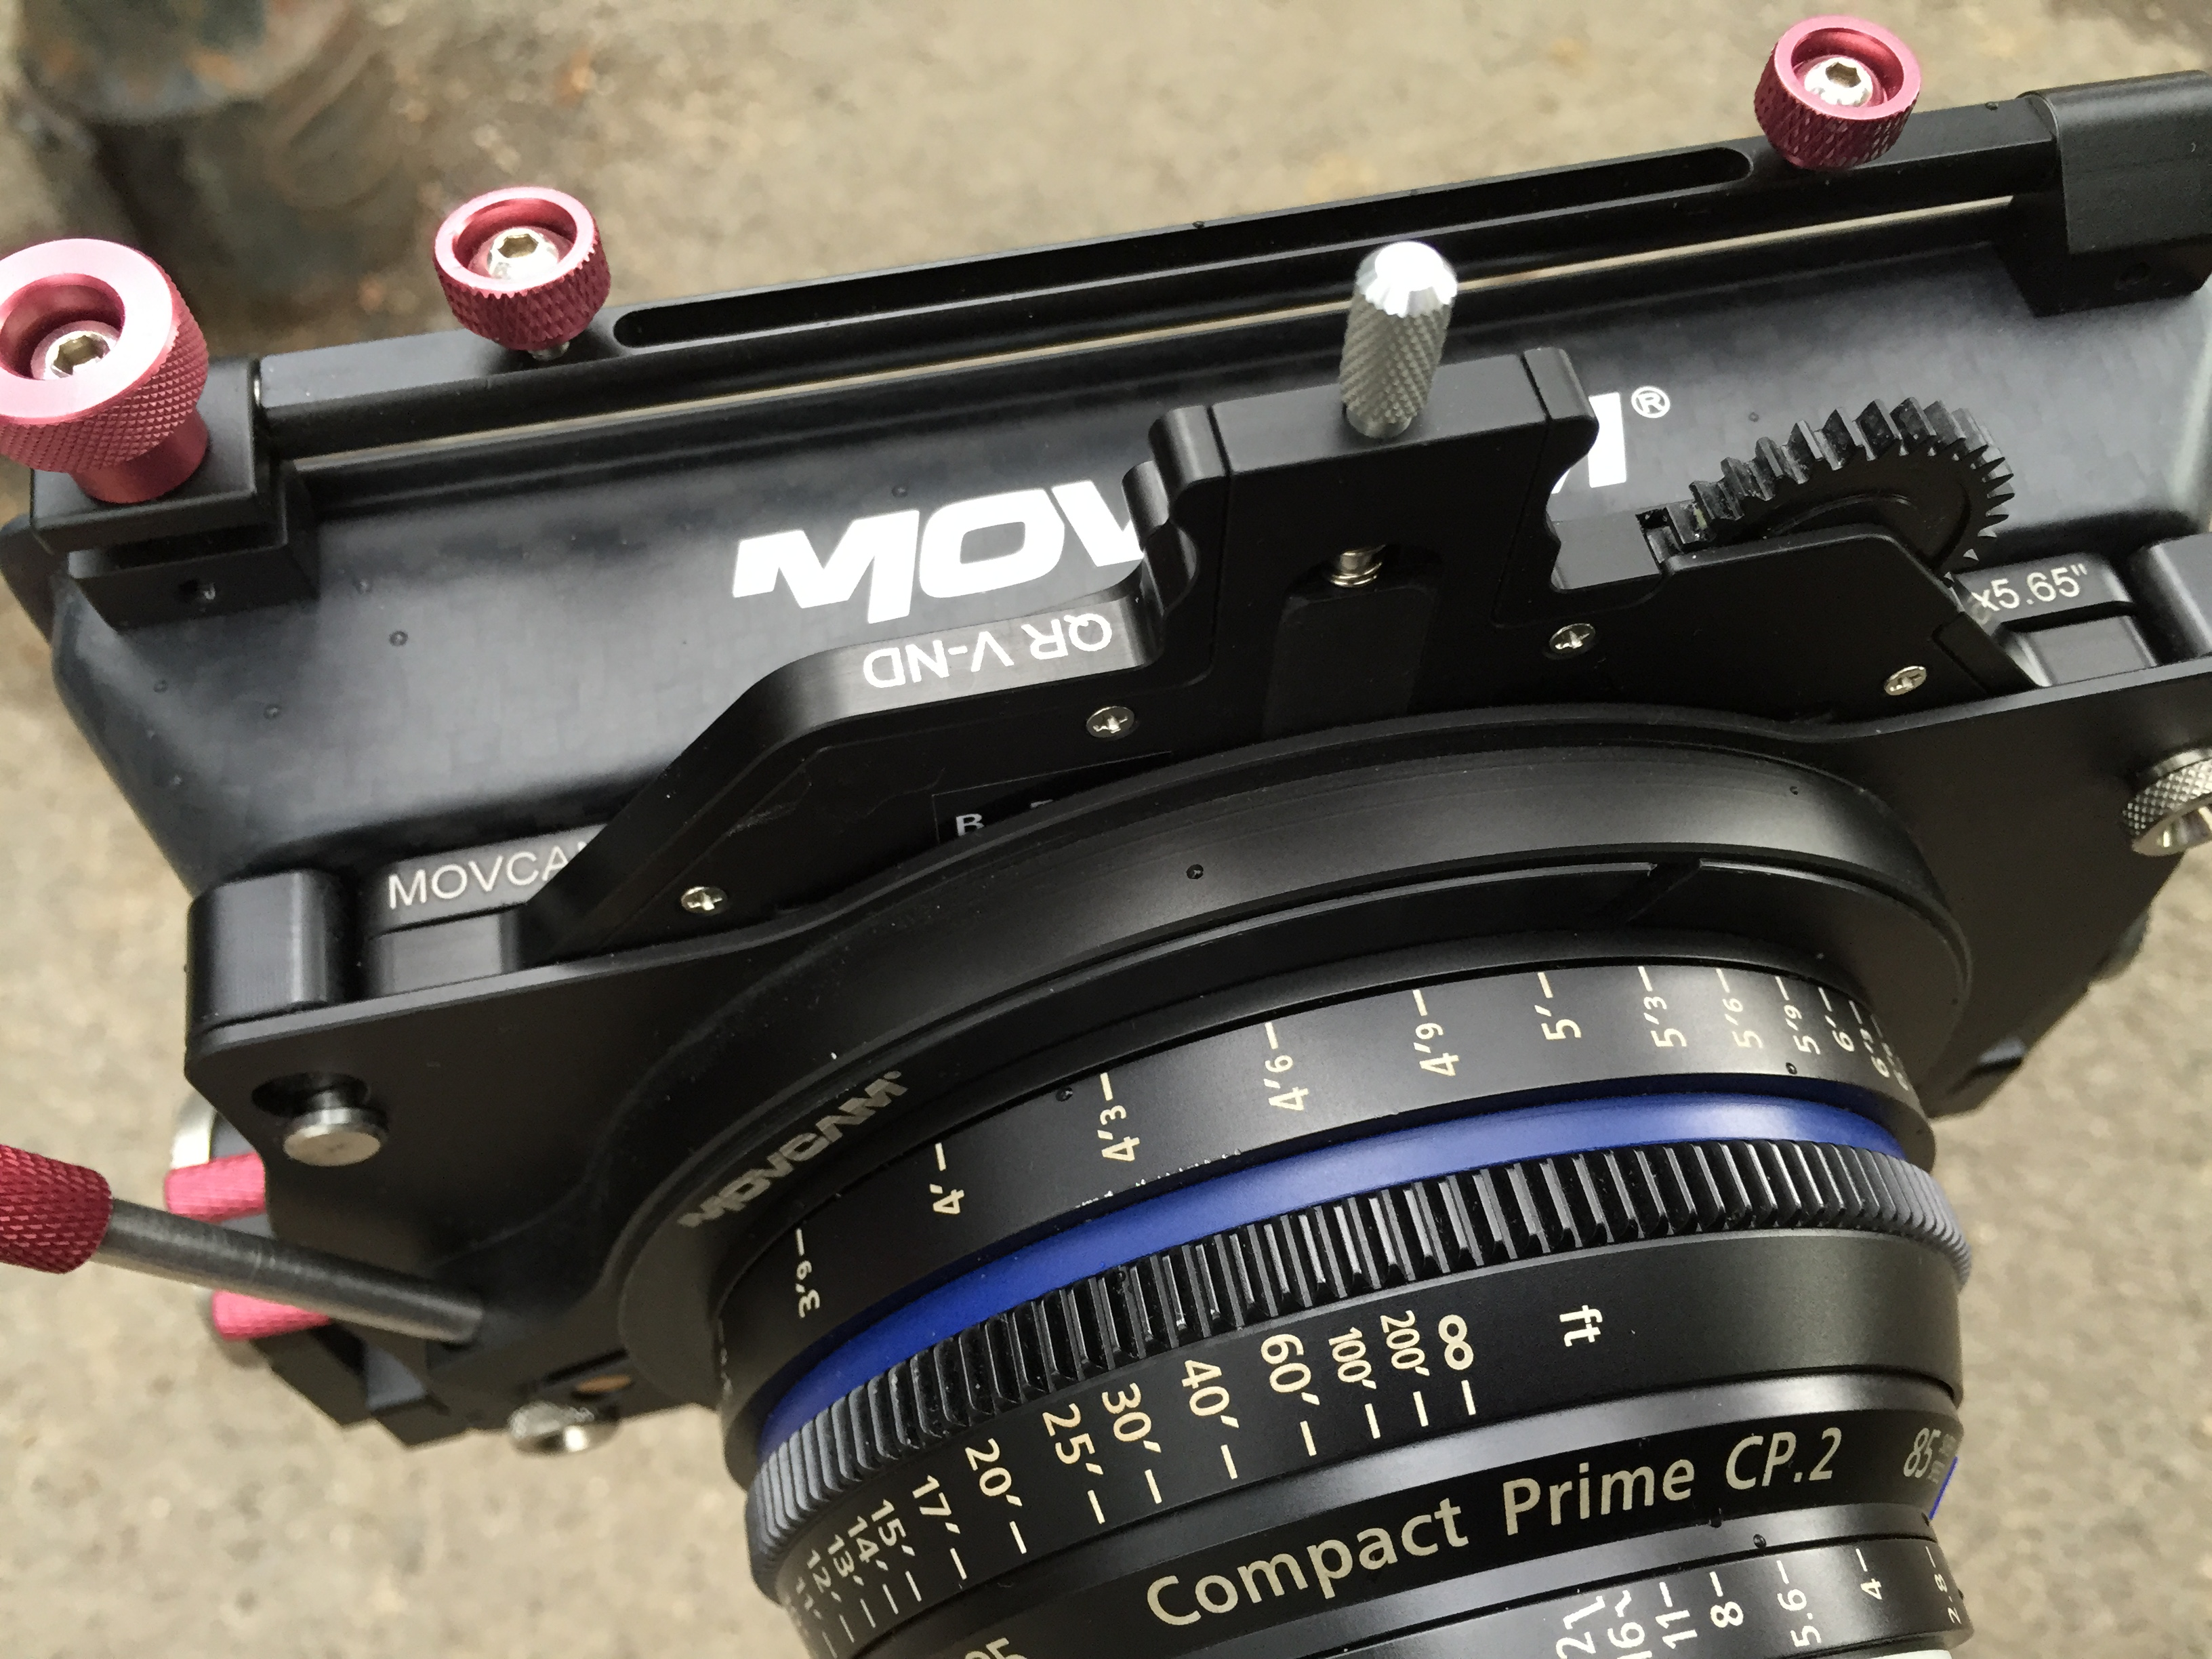 Hands on with the Tiffen Rota Pola: a high-end variable neutral density filter for your cinema camera